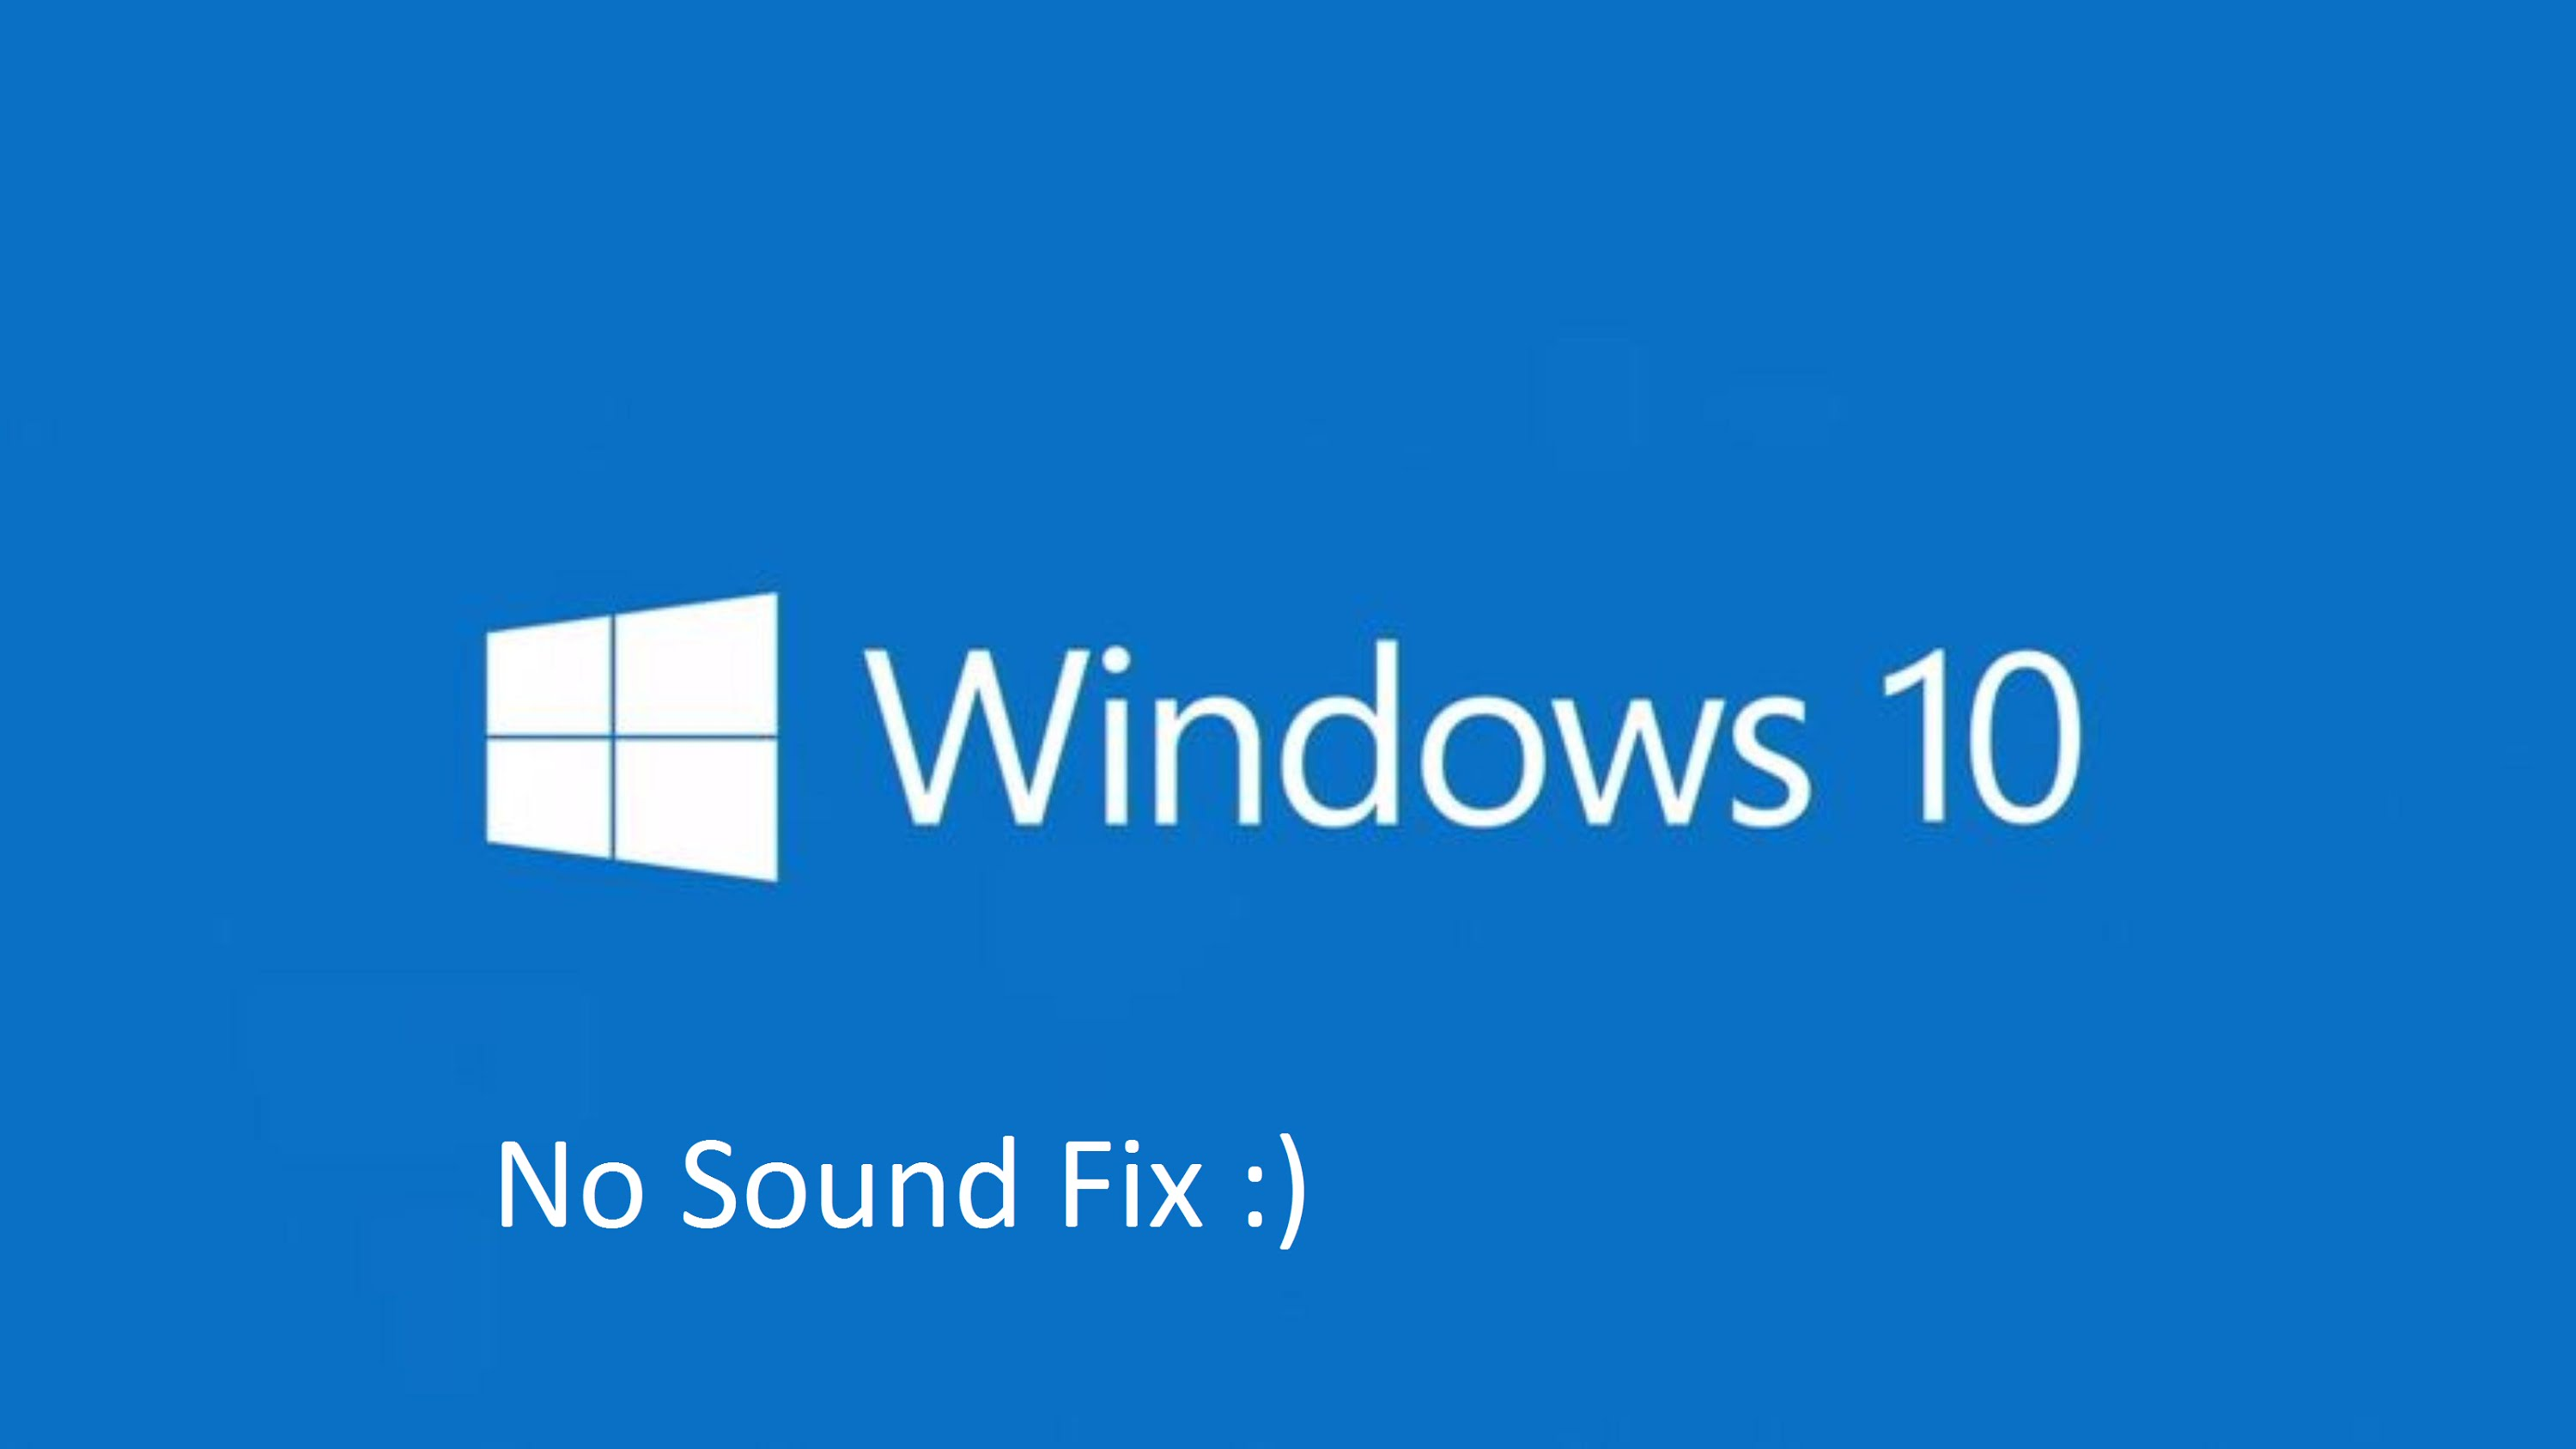 no sound on youtube after windows 10 update